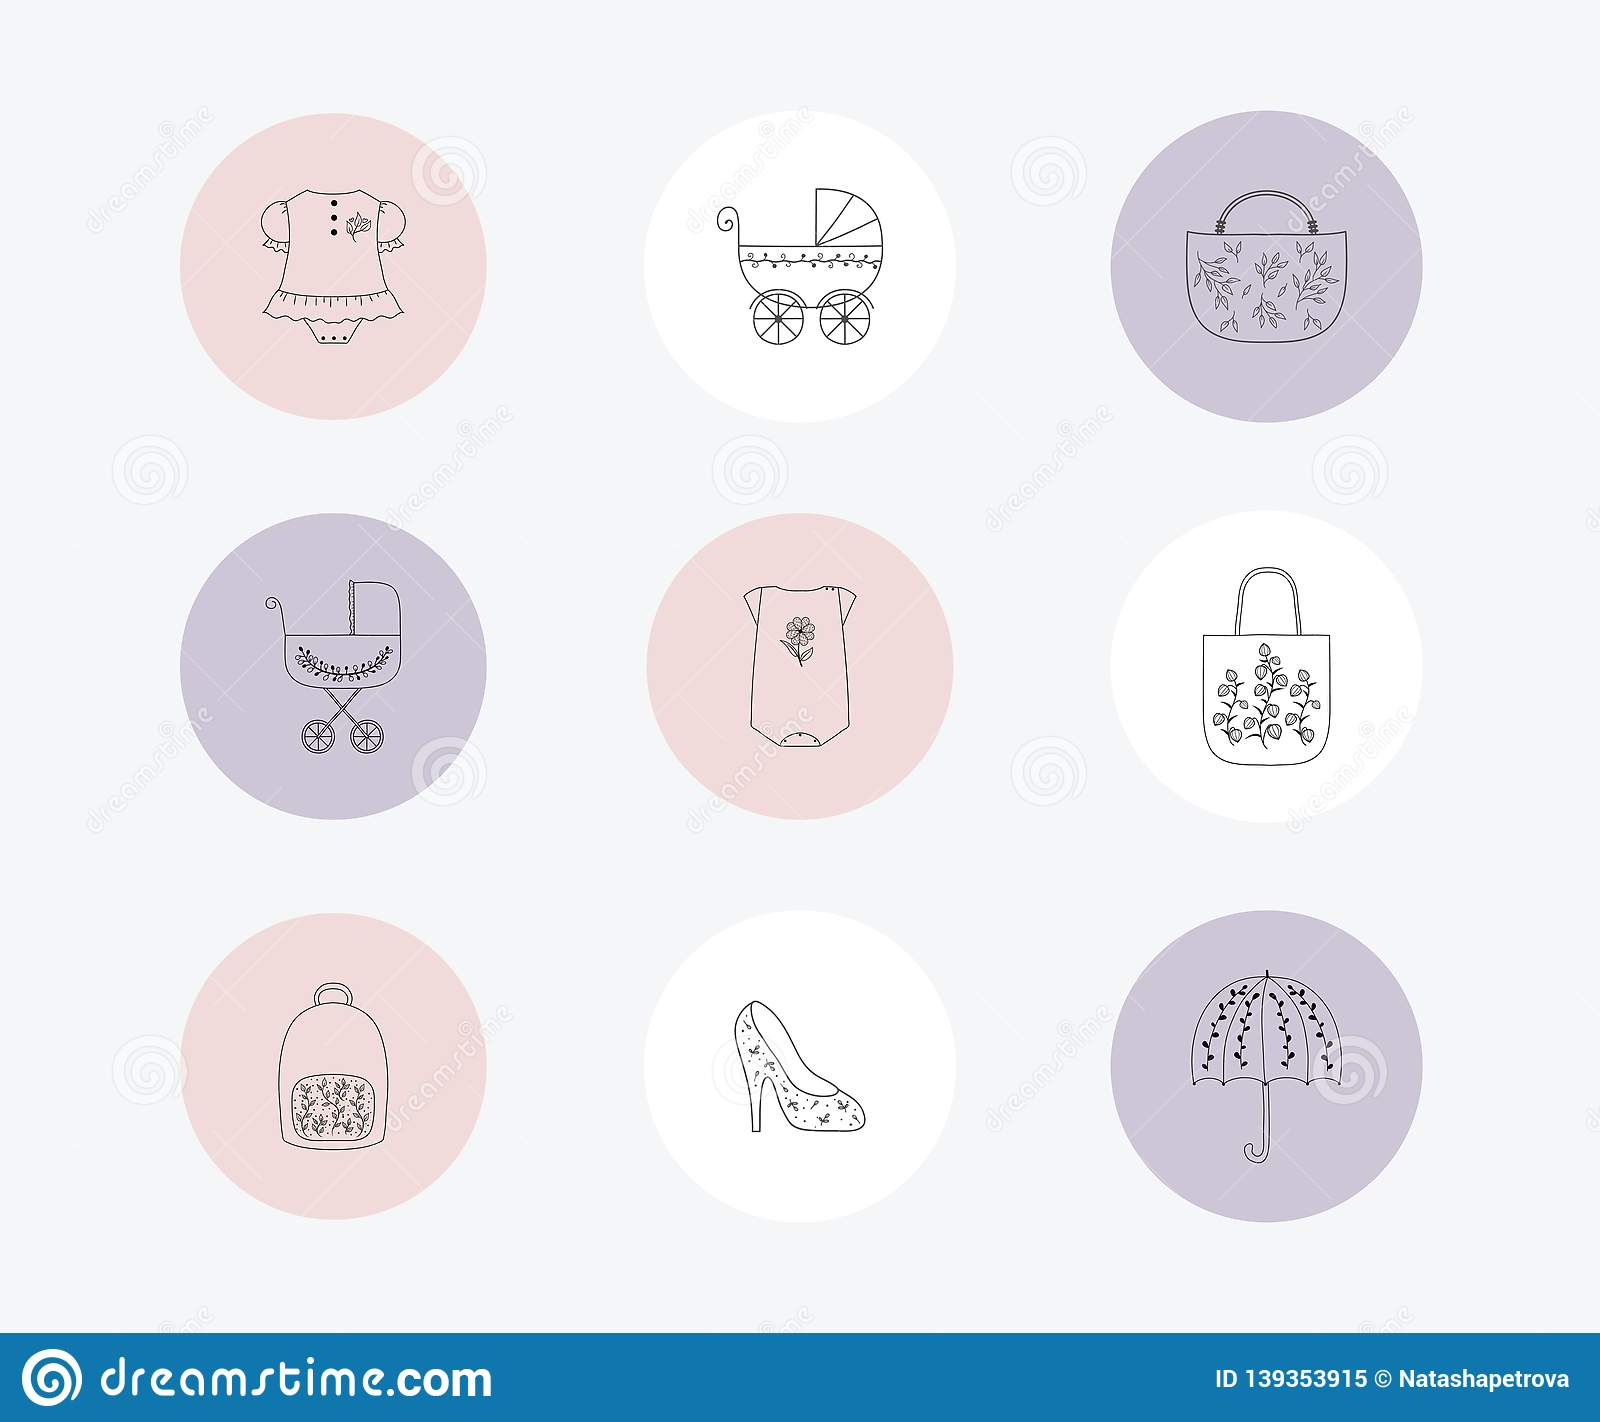 Christmas Icon For Instagram Highlights.Instagram Highlights Stories Covers Stock Vector